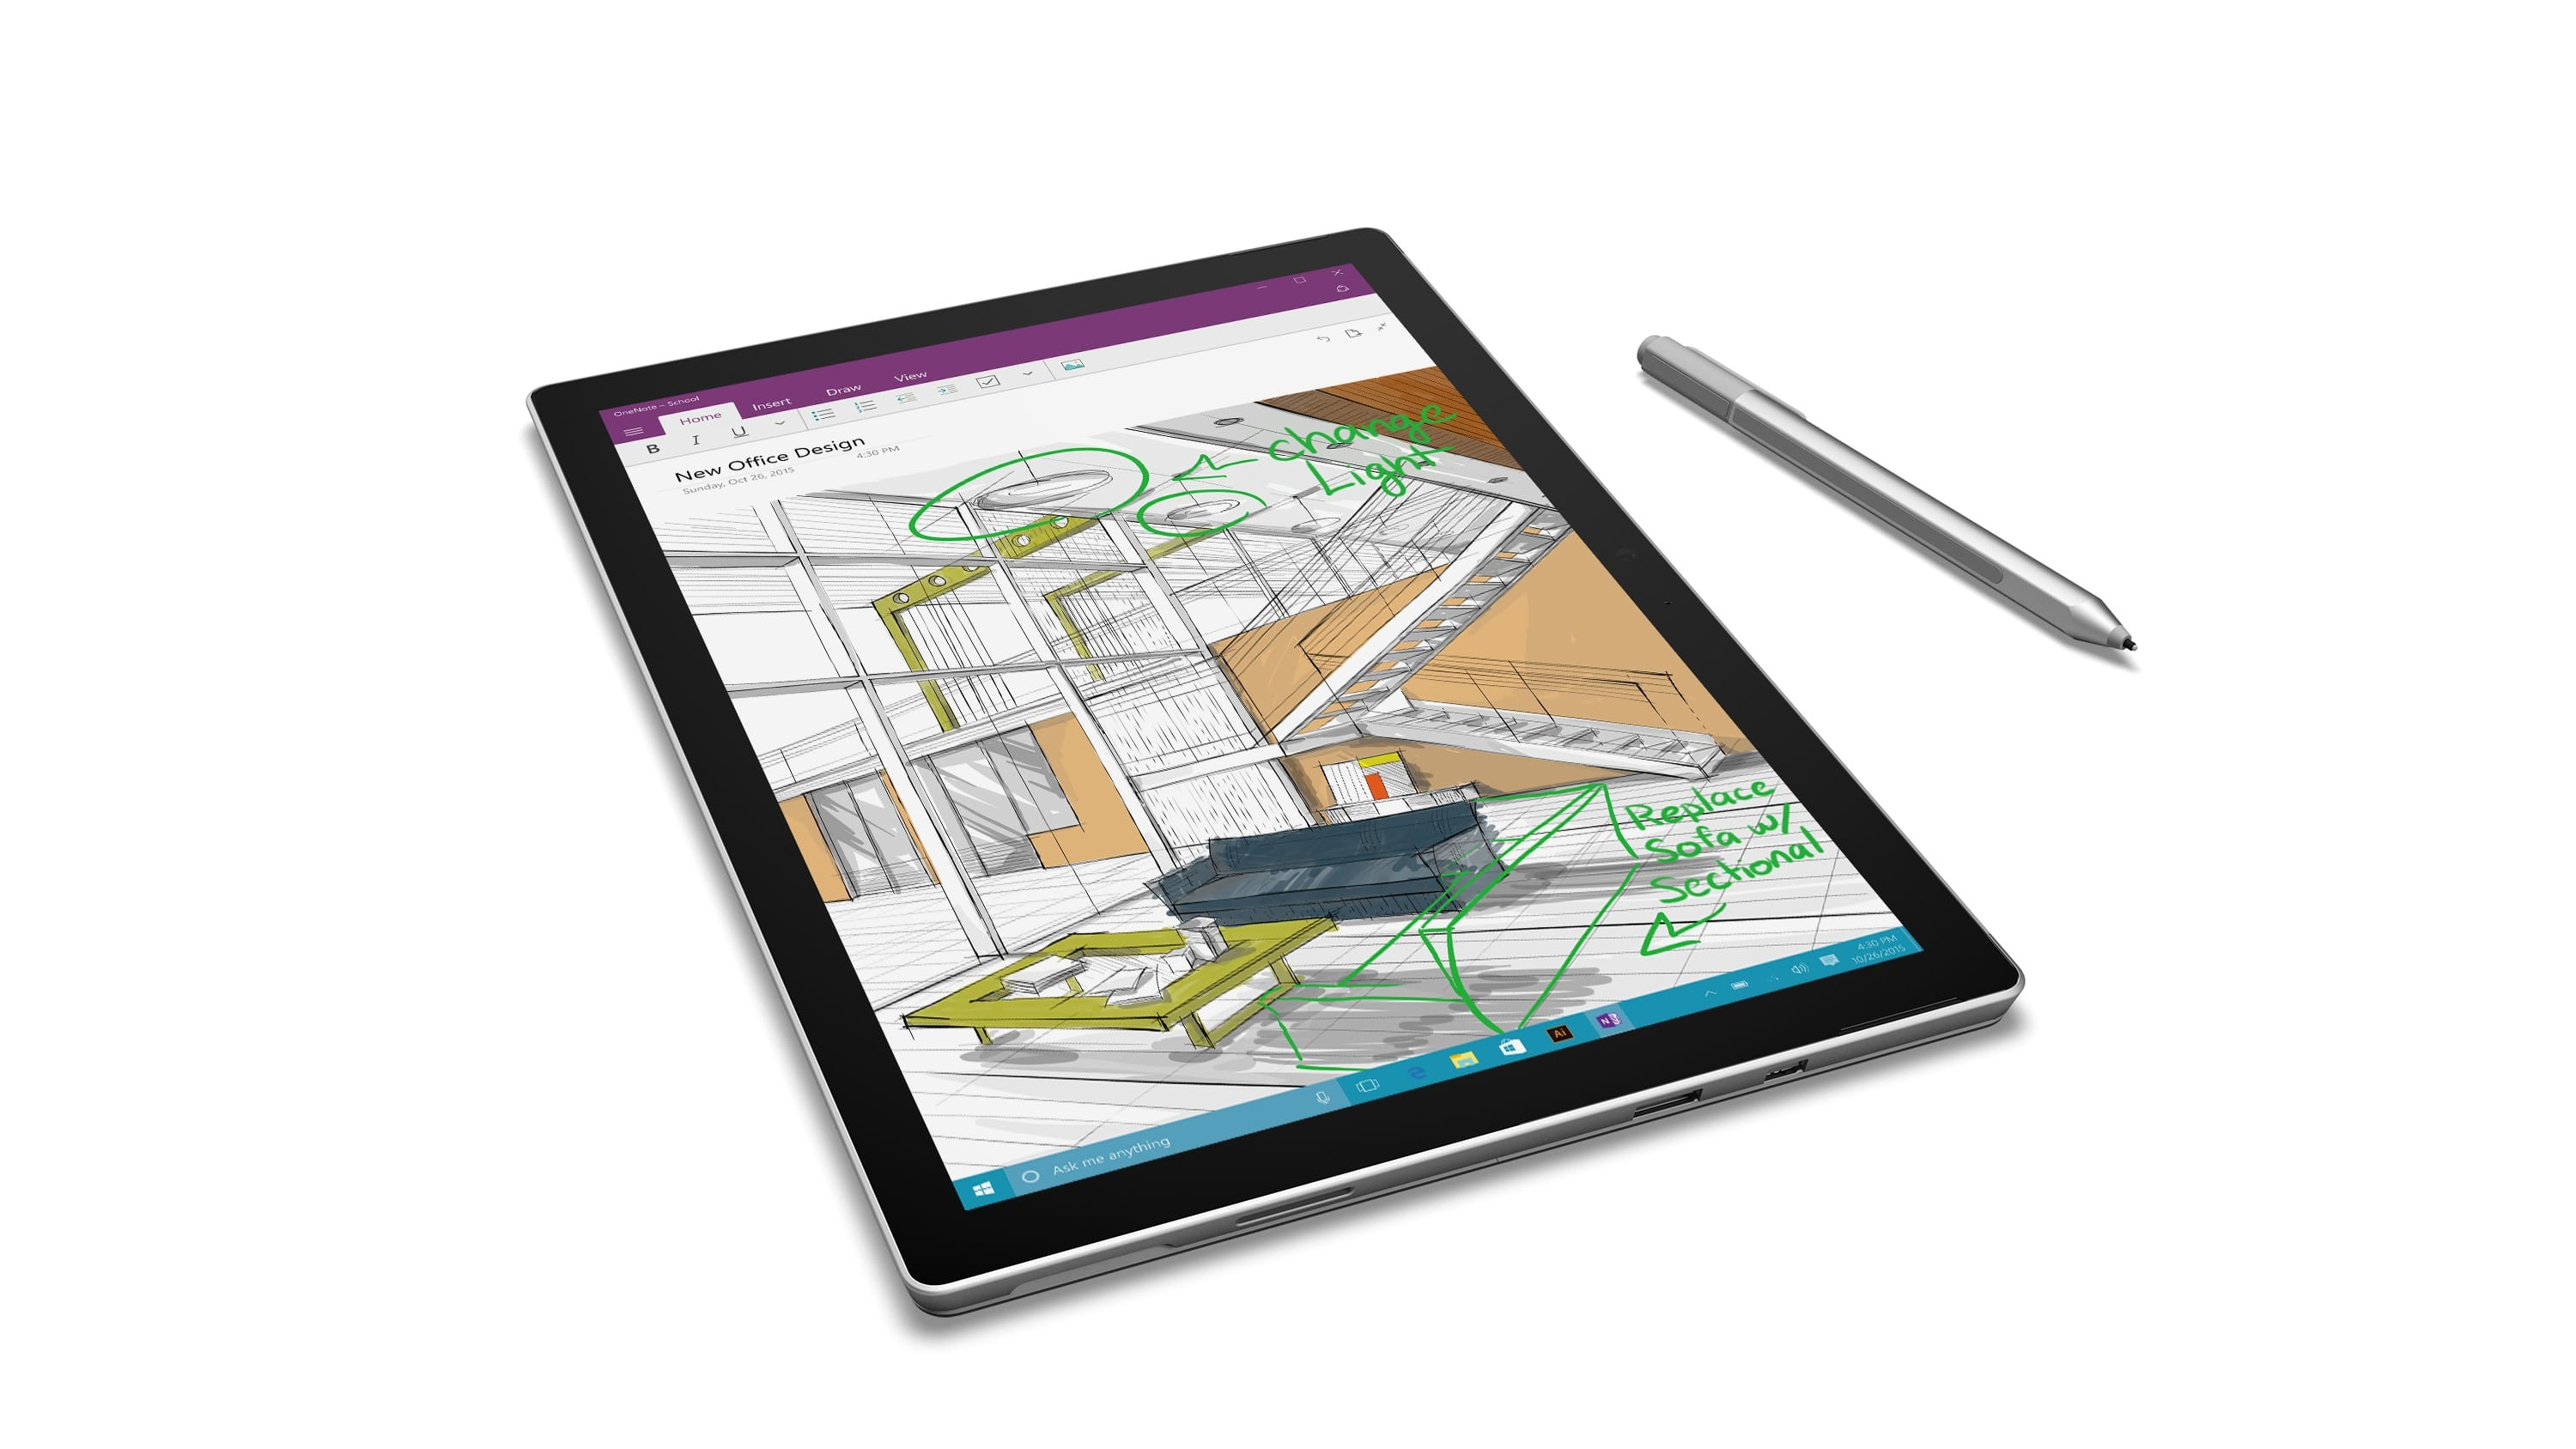 Microsoft-Surface-Pro-4-09-hero